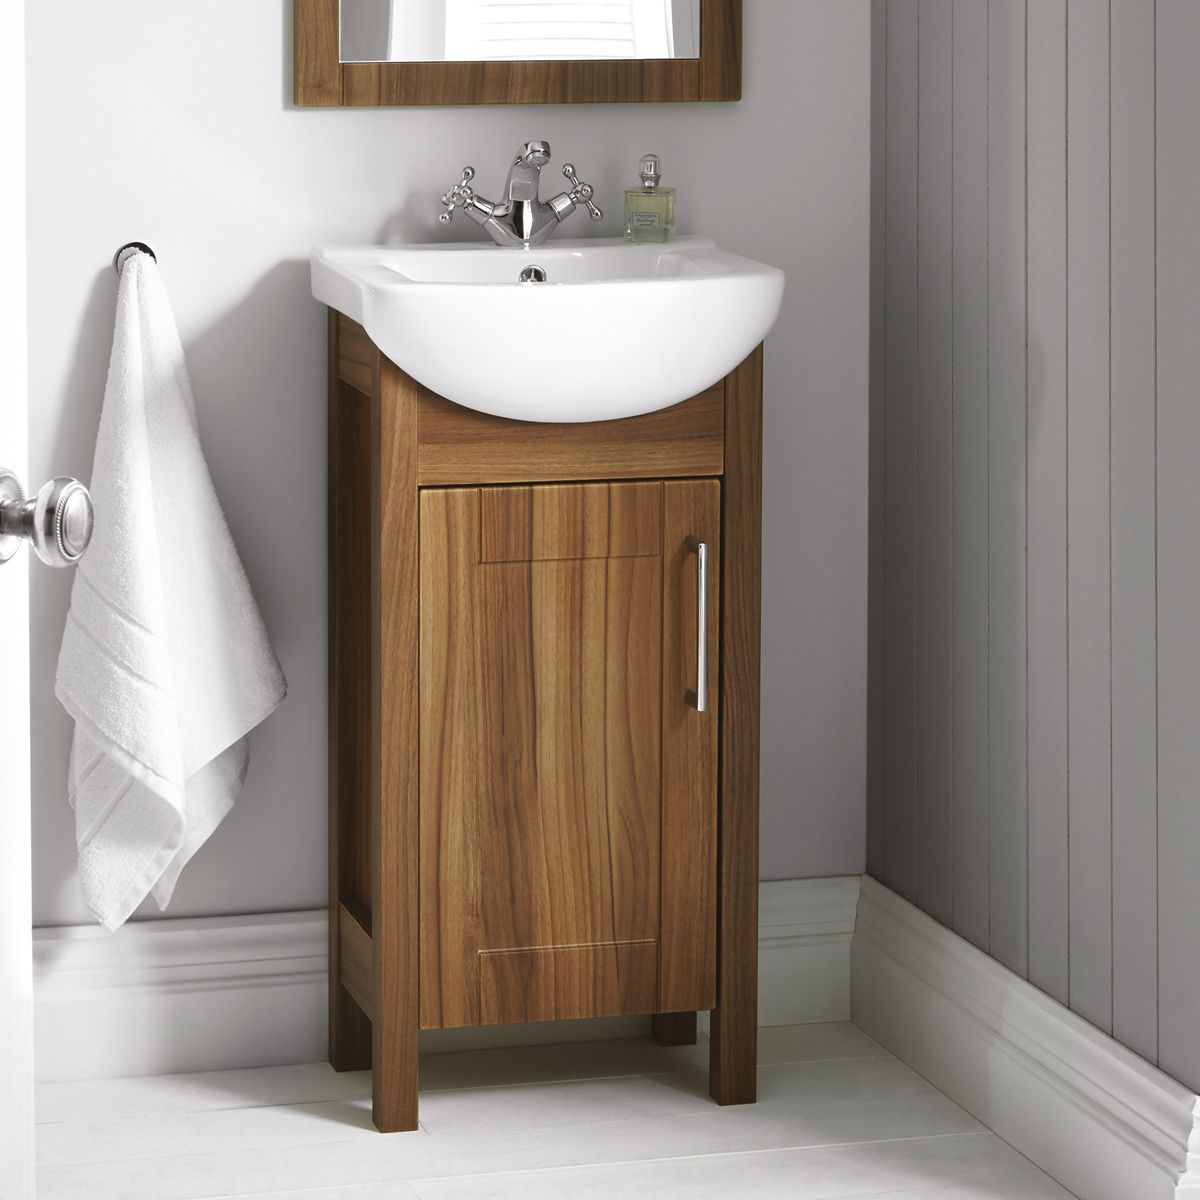 Elation Sendai Dijon Walnut Vanity Unit with Basin 450mm